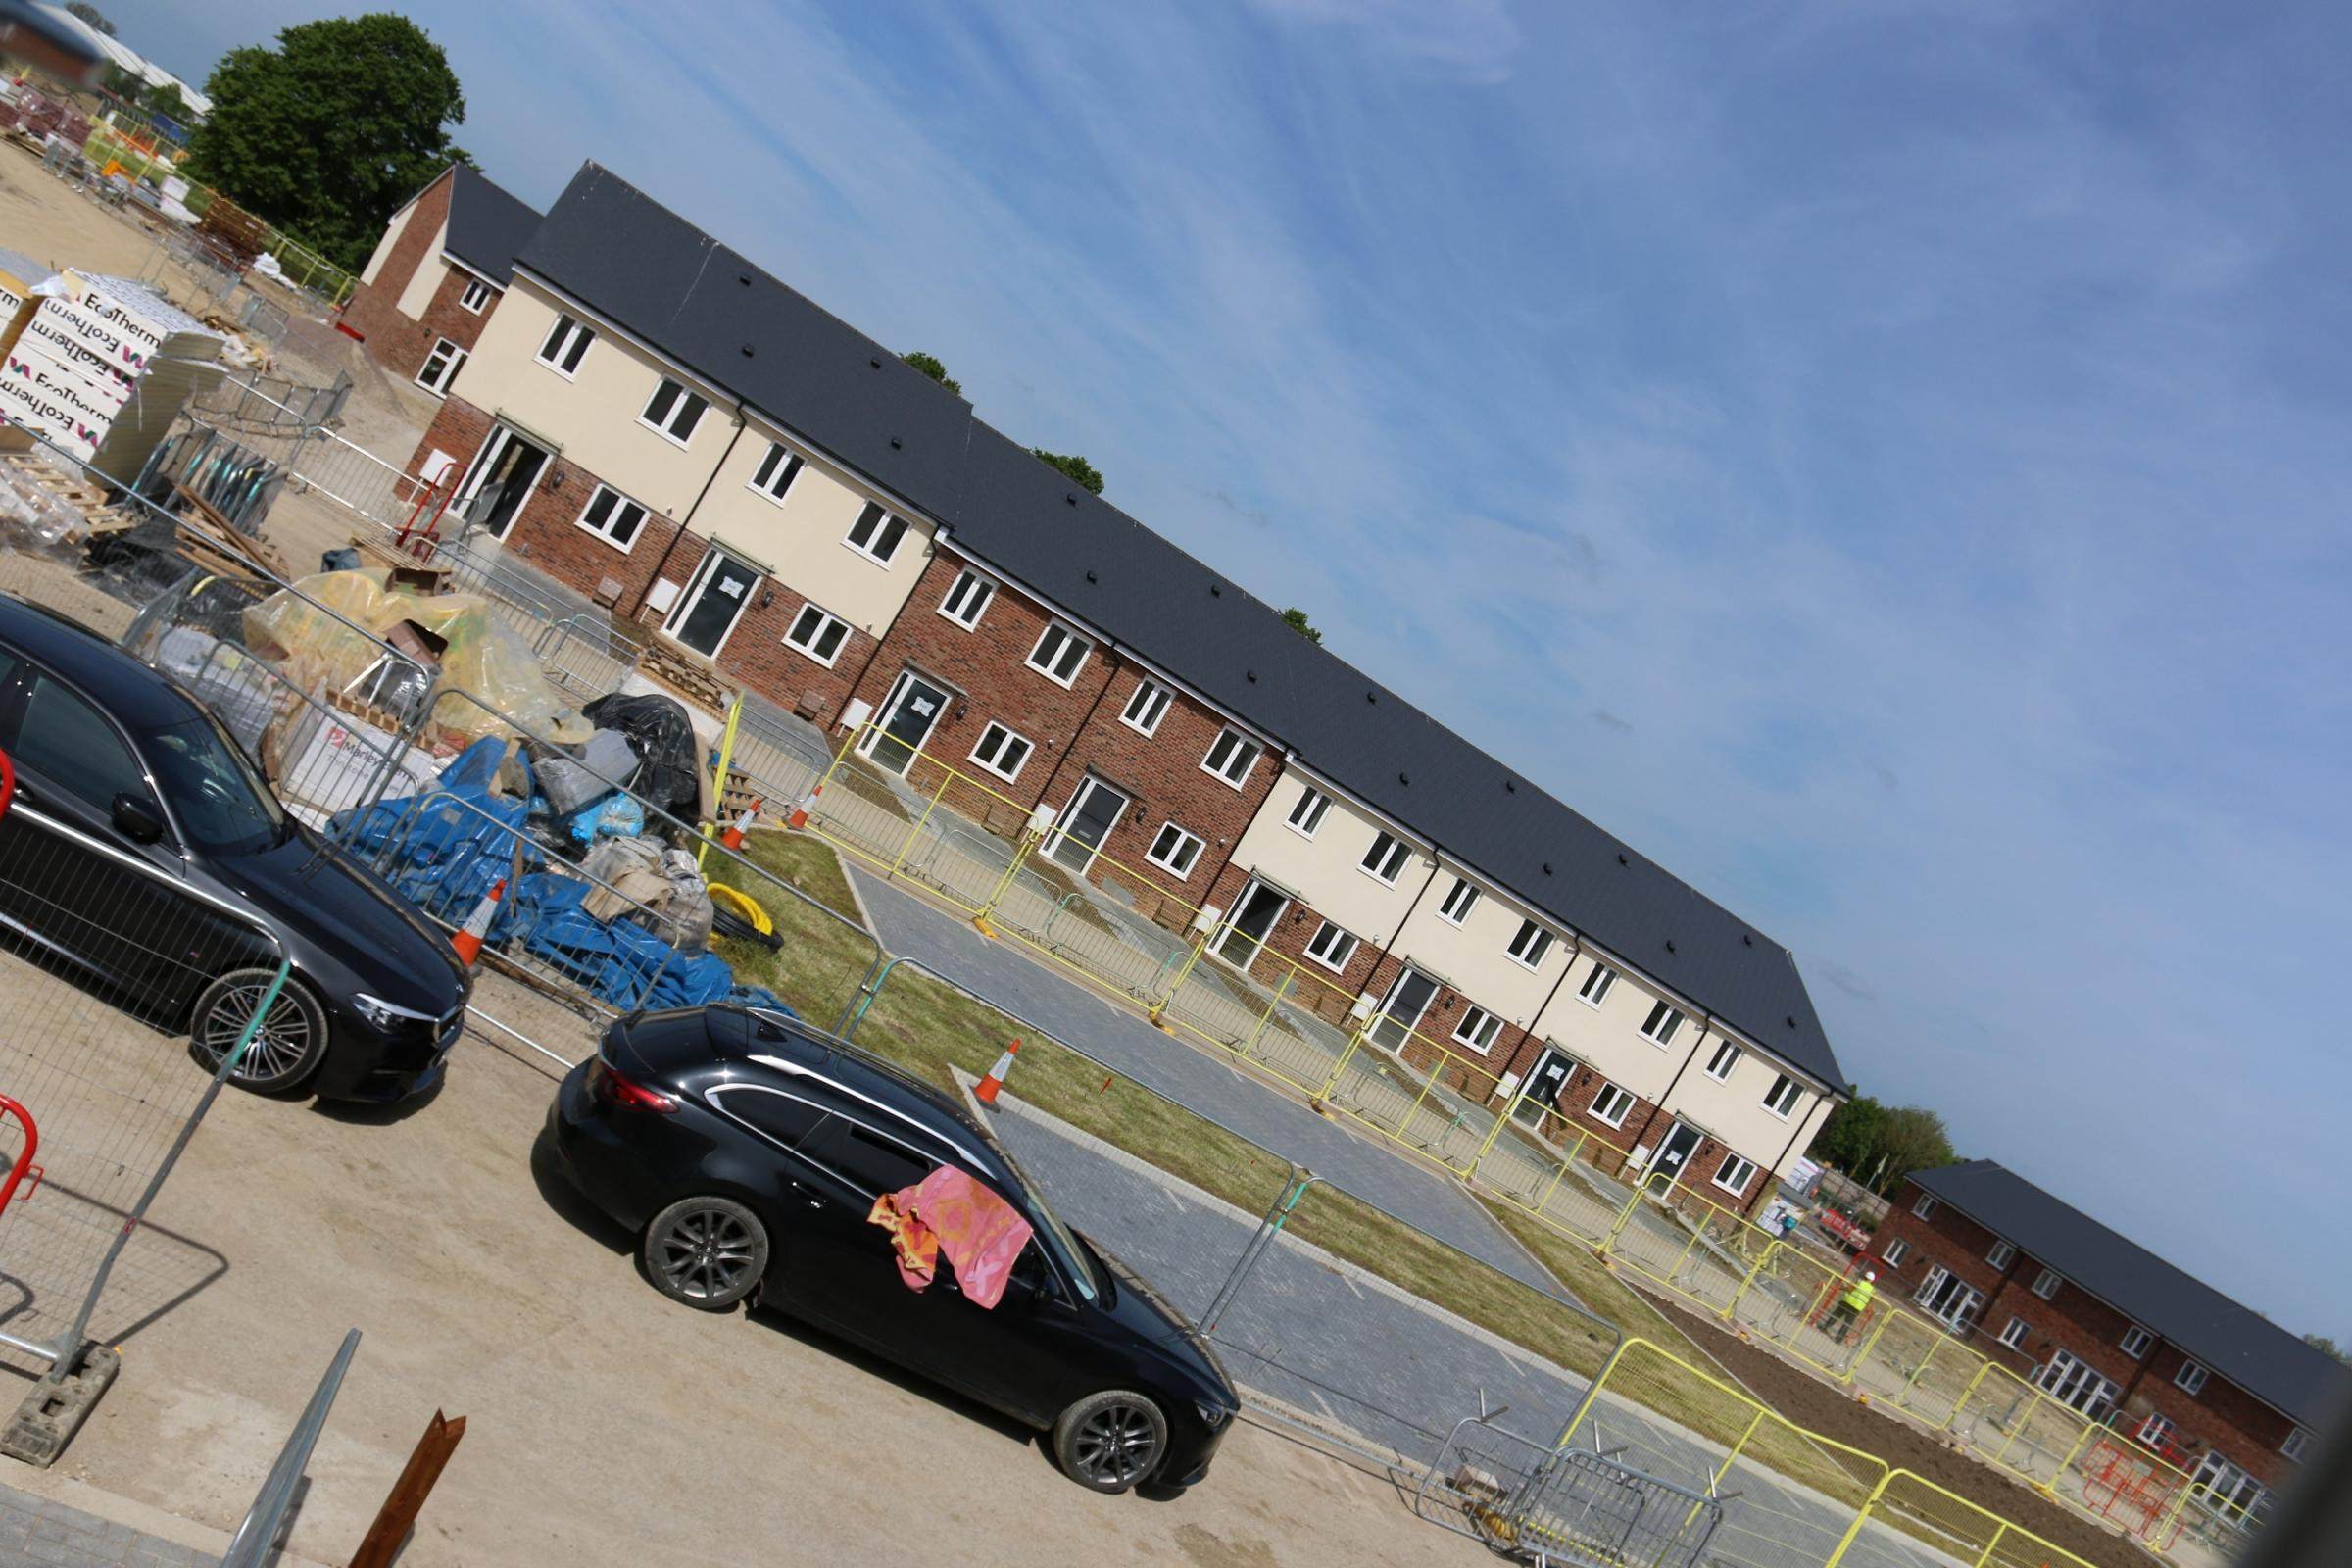 One of the blocks of affordable homes at Graven Hill which will soon be taken ownership by Bromford